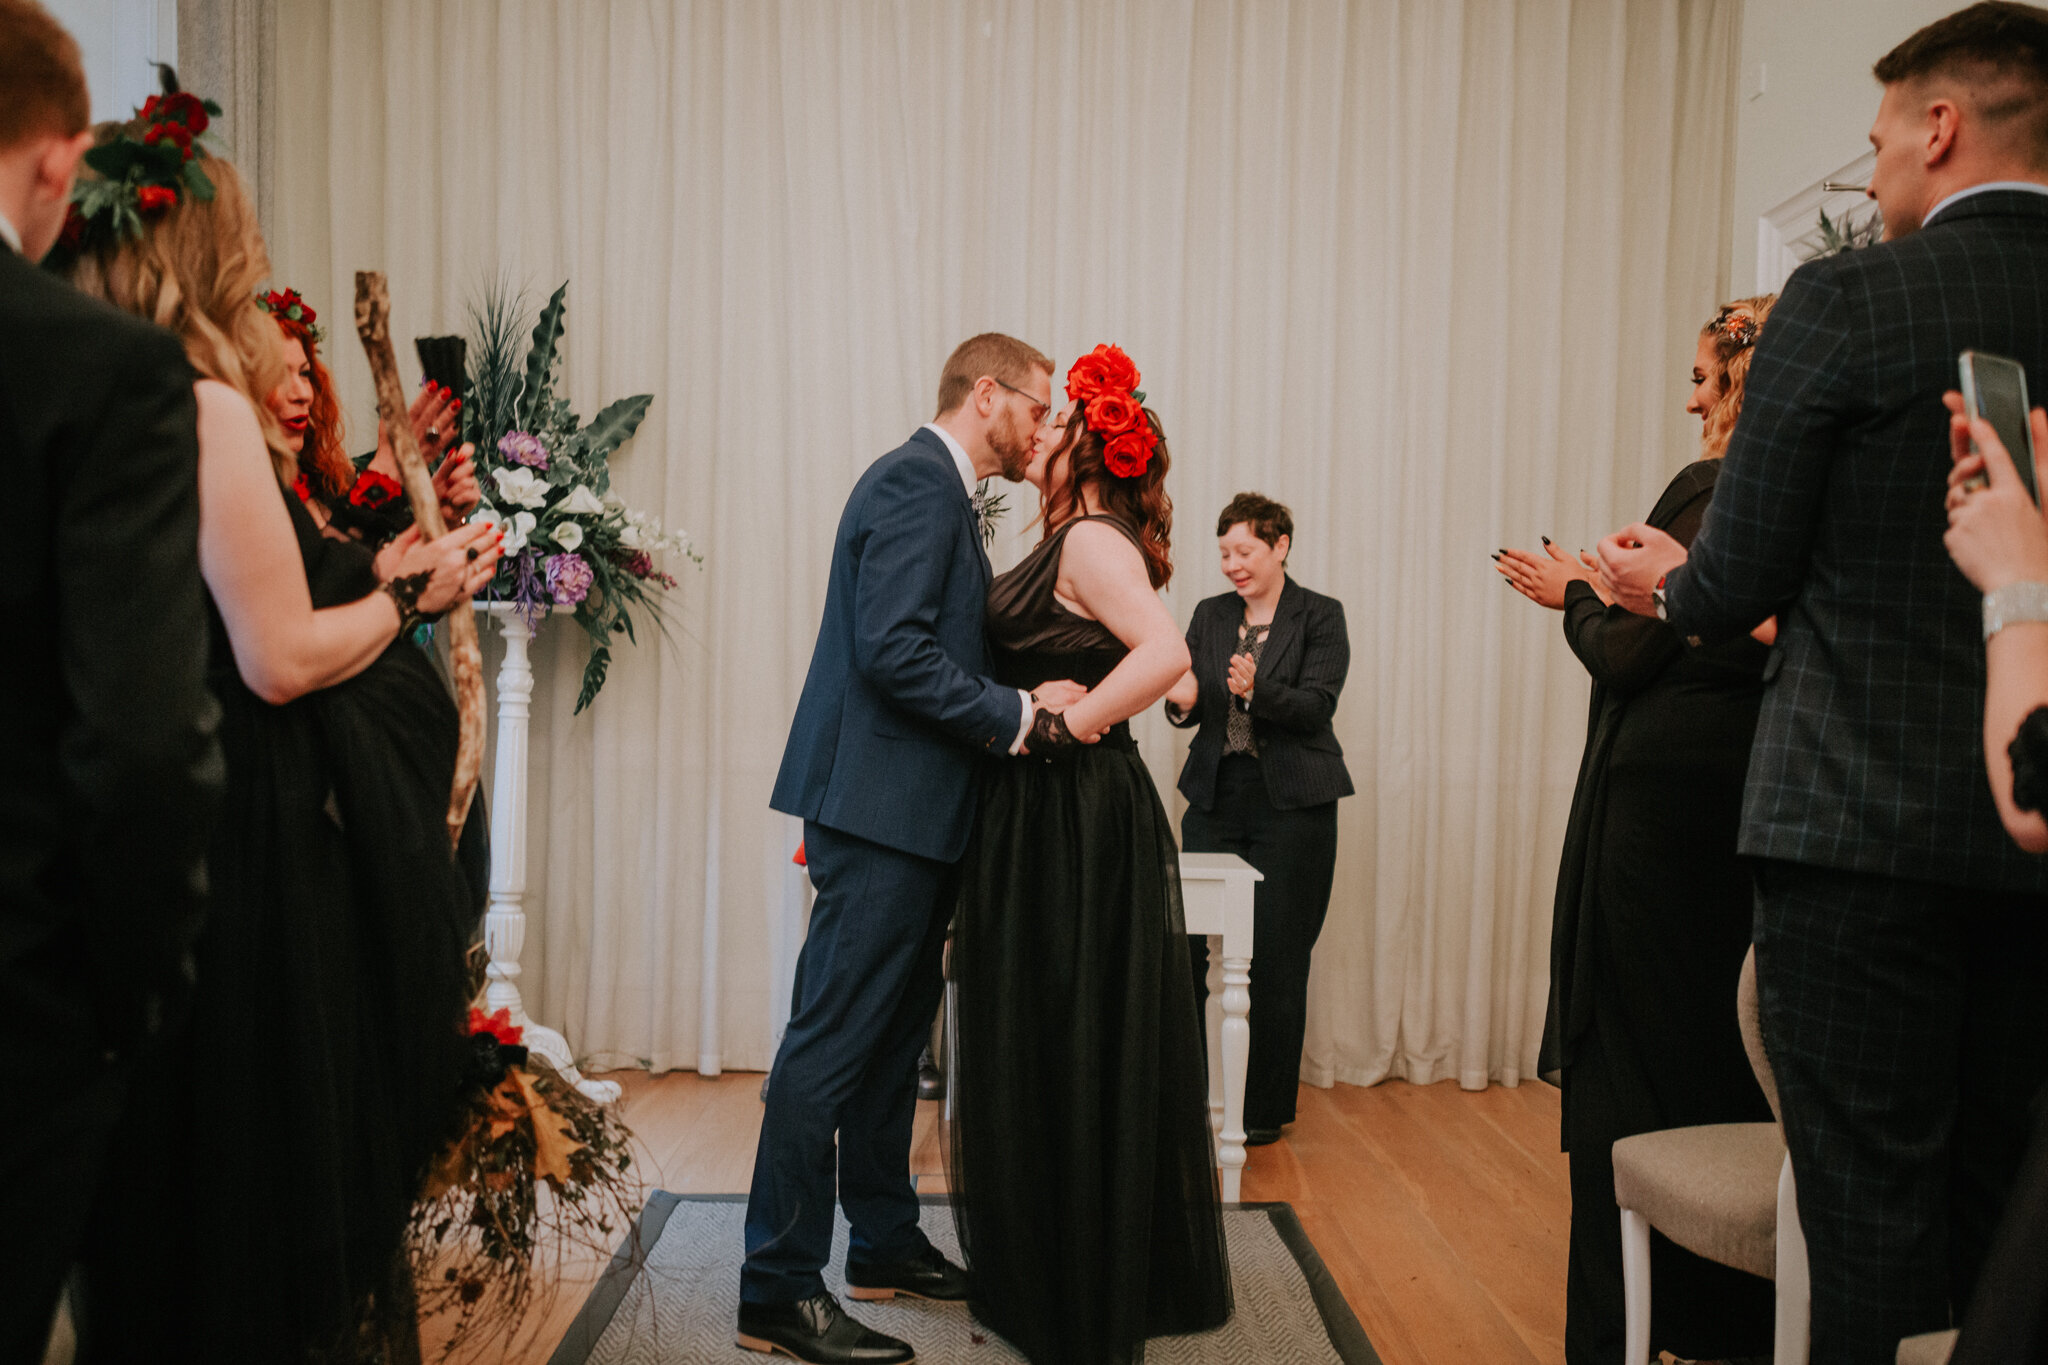 The first kiss as a husband and wife